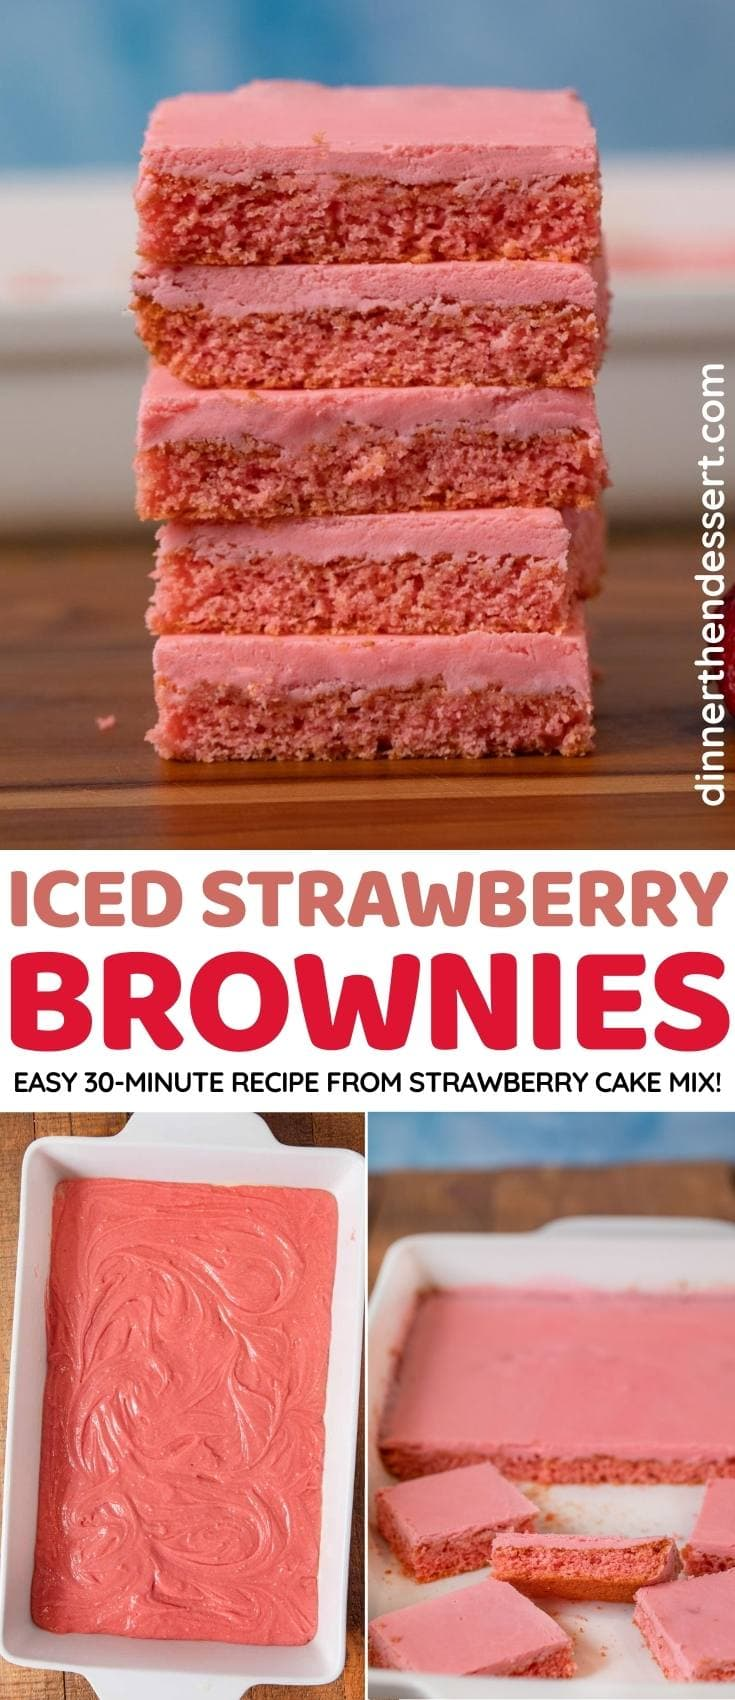 Iced Strawberry Brownies collage